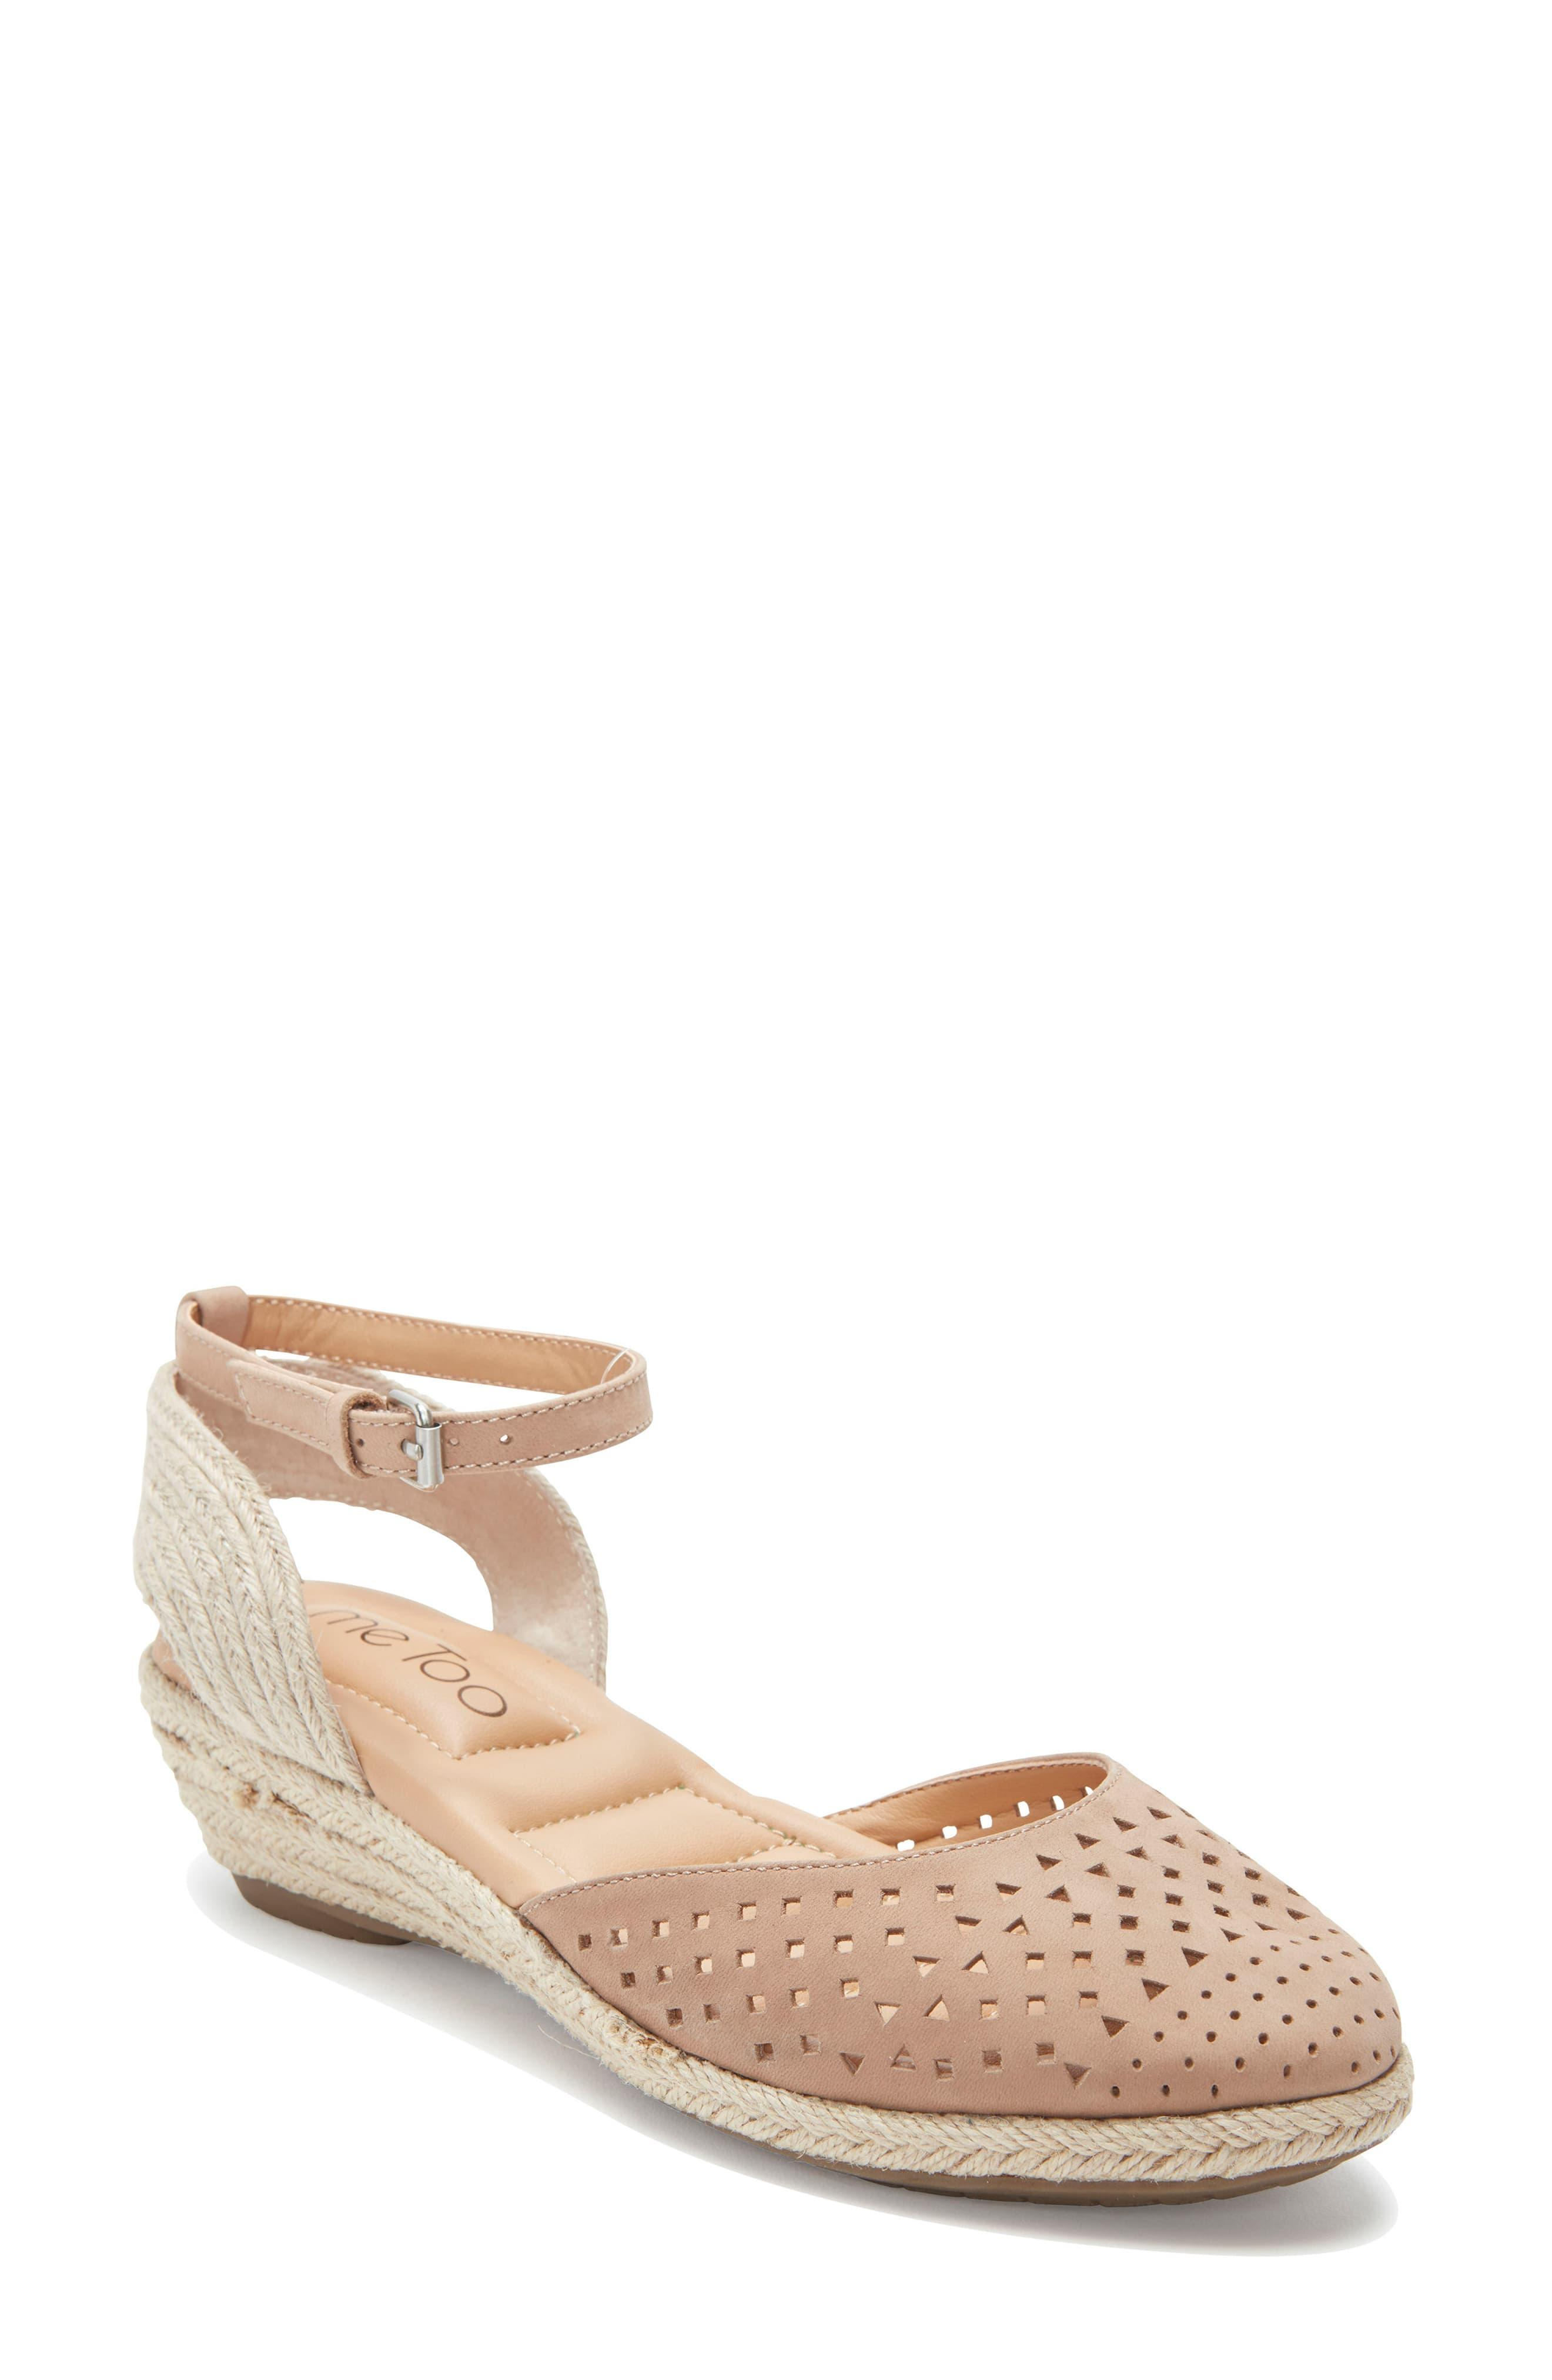 e791d65aef Me Too Norina Espadrille Sandal in Natural - Lyst